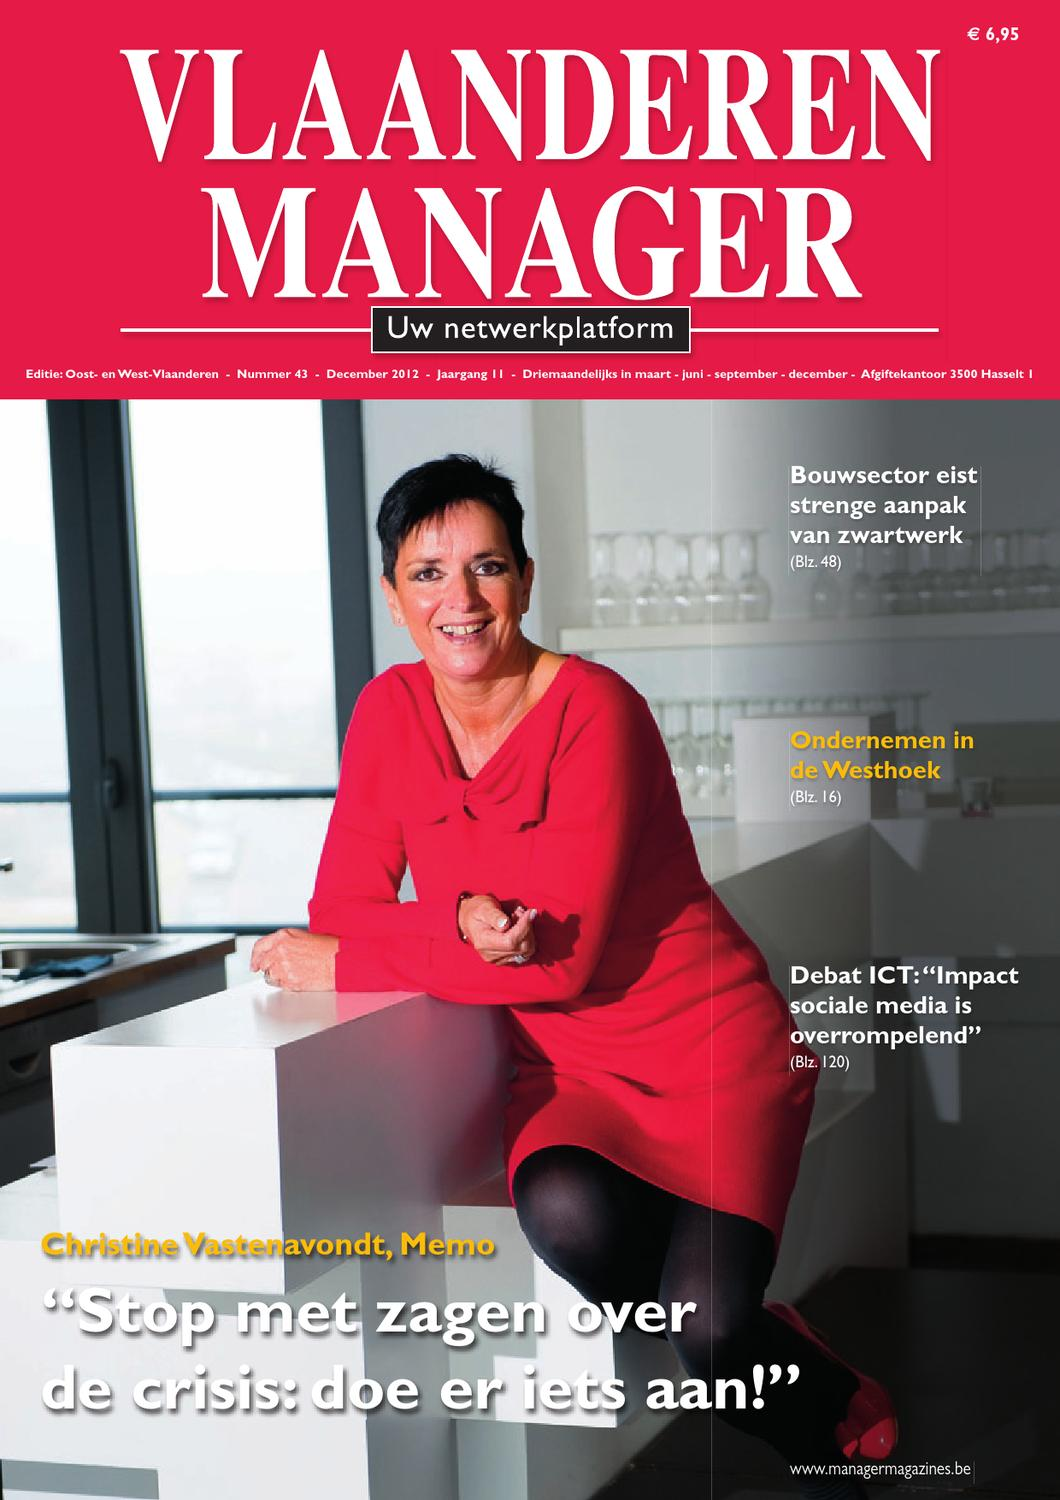 Brabant Manager 38 by Manager Magazines - issuu